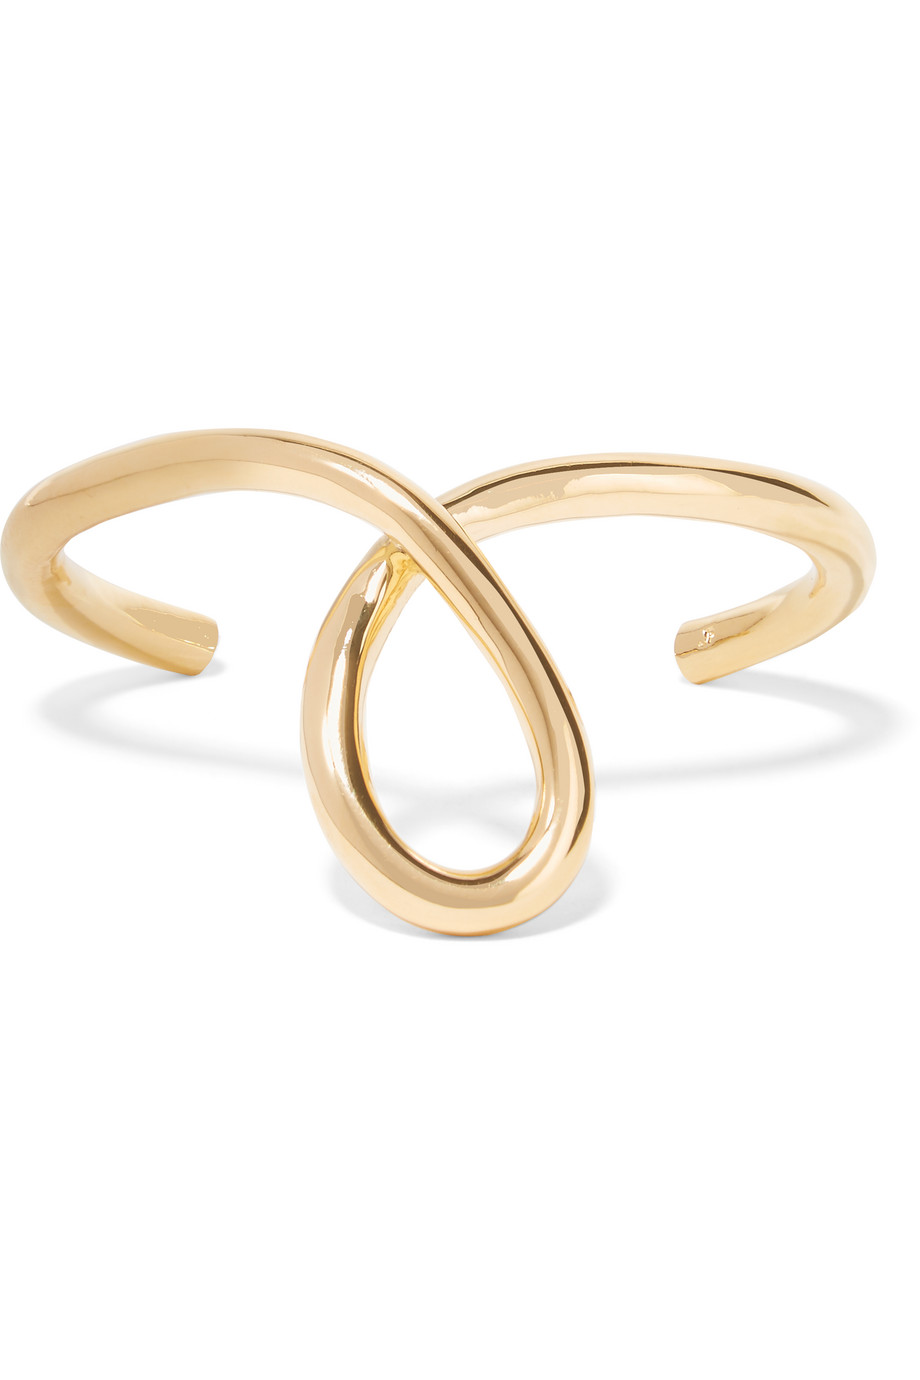 Jennifer Fisher Large Loop Gold-Plated Cuff, Women's